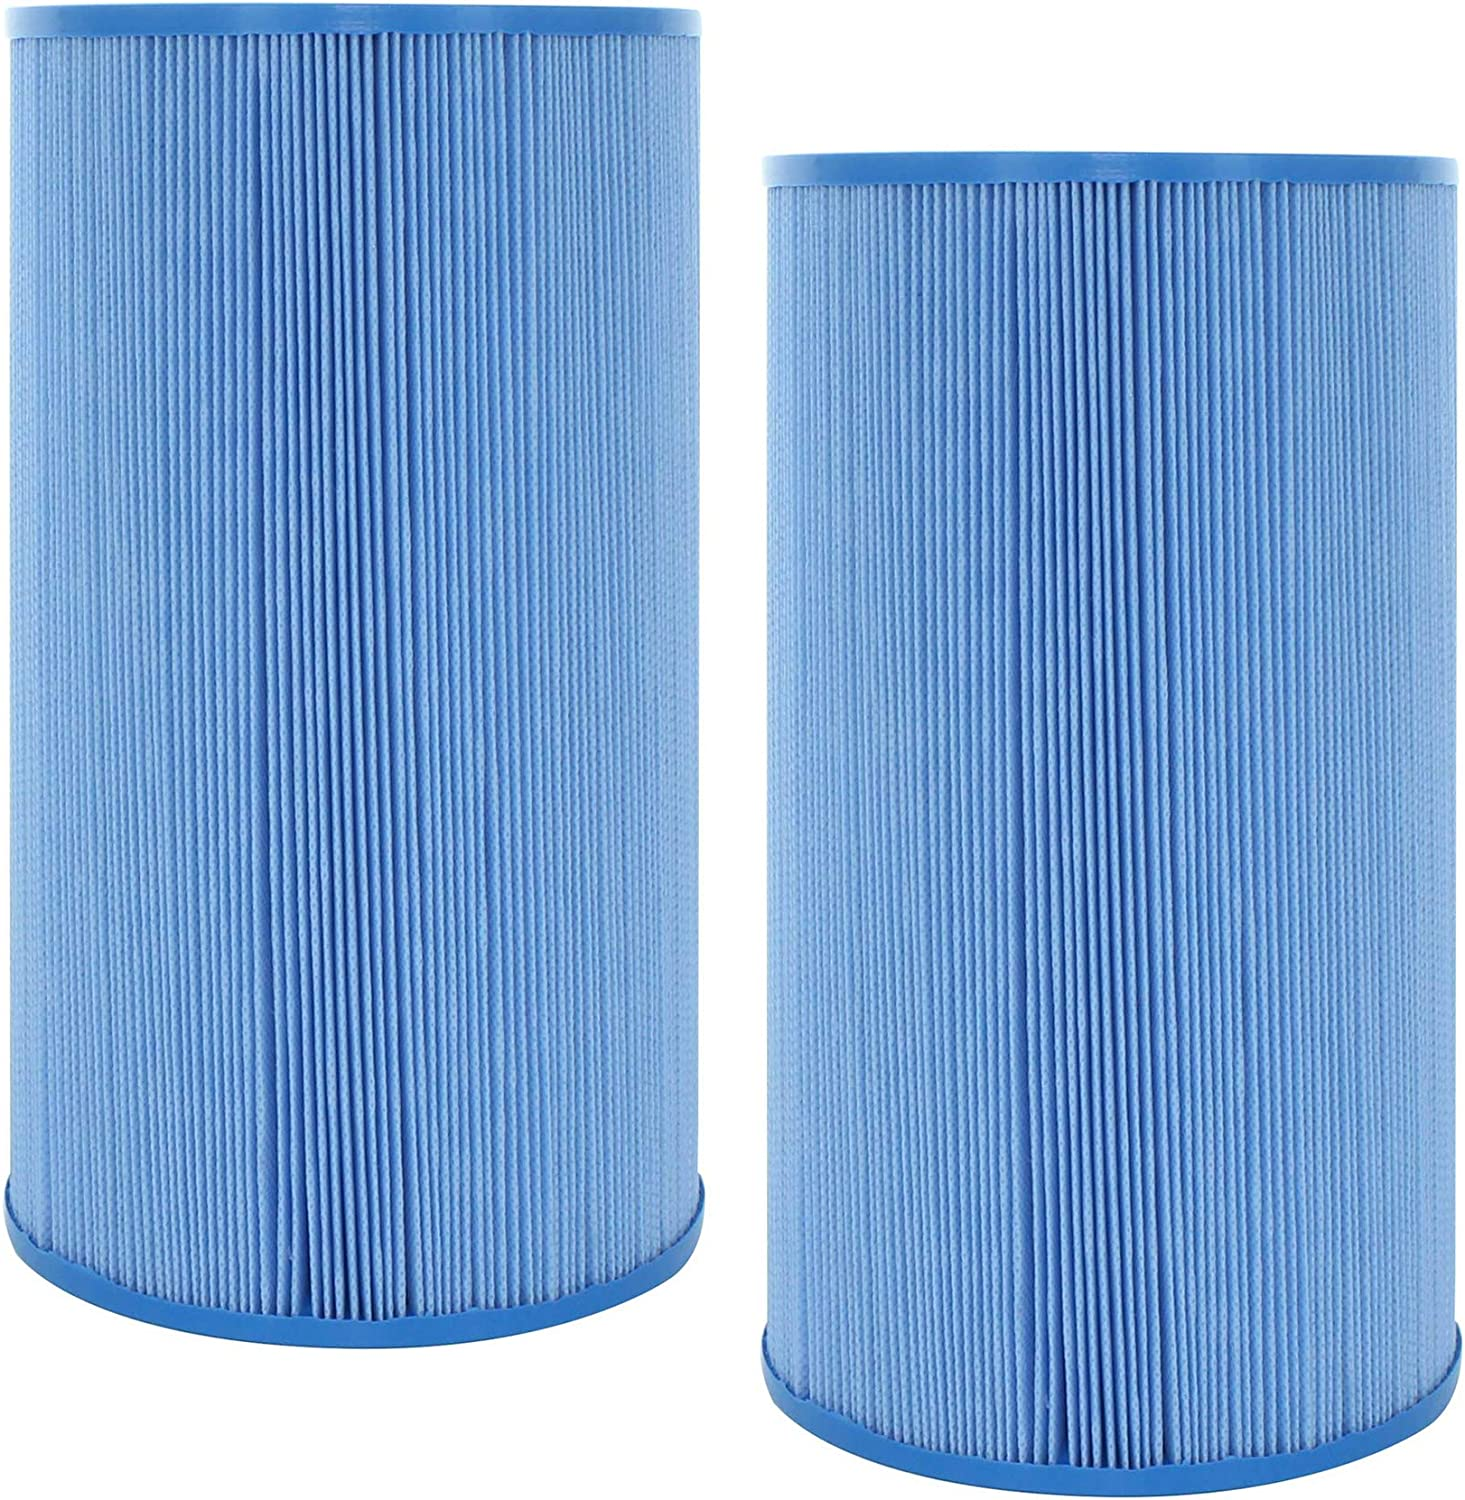 Pleatco Prb35-In Rainbow Synamic Series Iv 2 Guardian Pool Spa Filter Replaces Unicel C-4335 Fc-2385